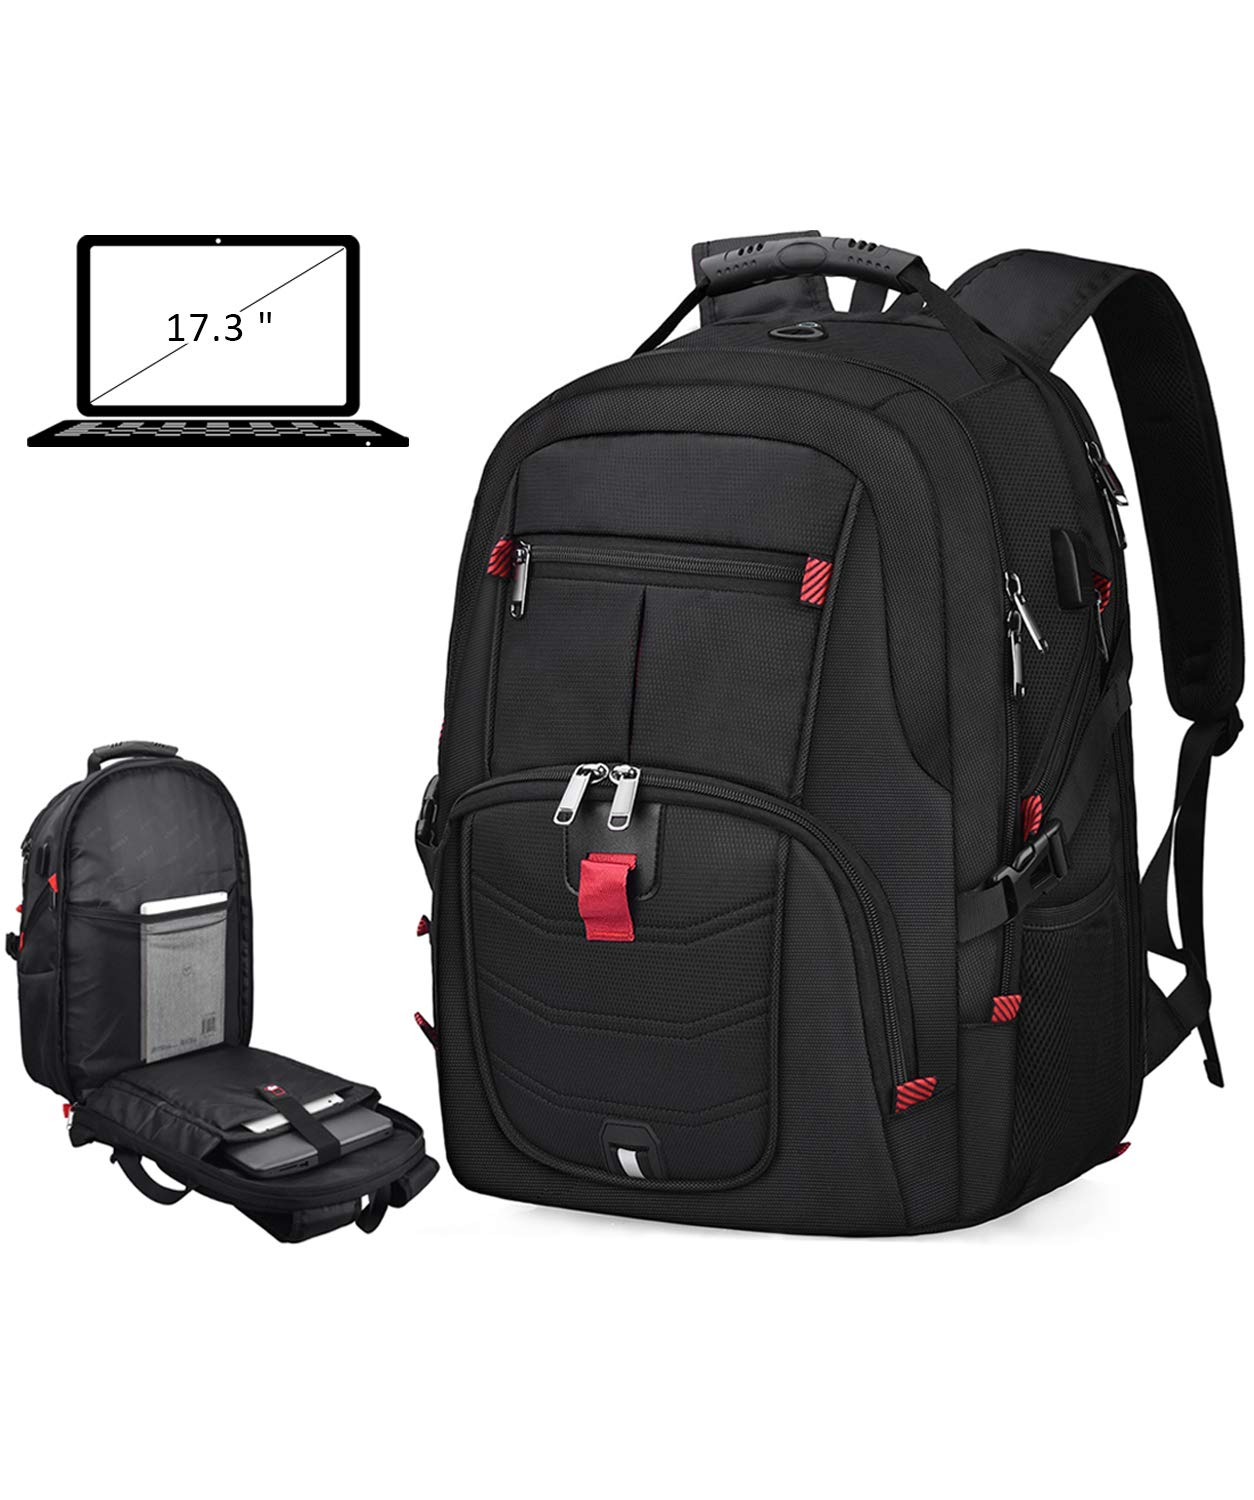 Laptop Backpack 17 Inch Waterproof Extra Large TSA Travel Backpack Anti Theft College School Business Mens Backpacks with USB Charging Port 17.3 Gaming Computer Backpack for Women Men Black 45L by NUBILY